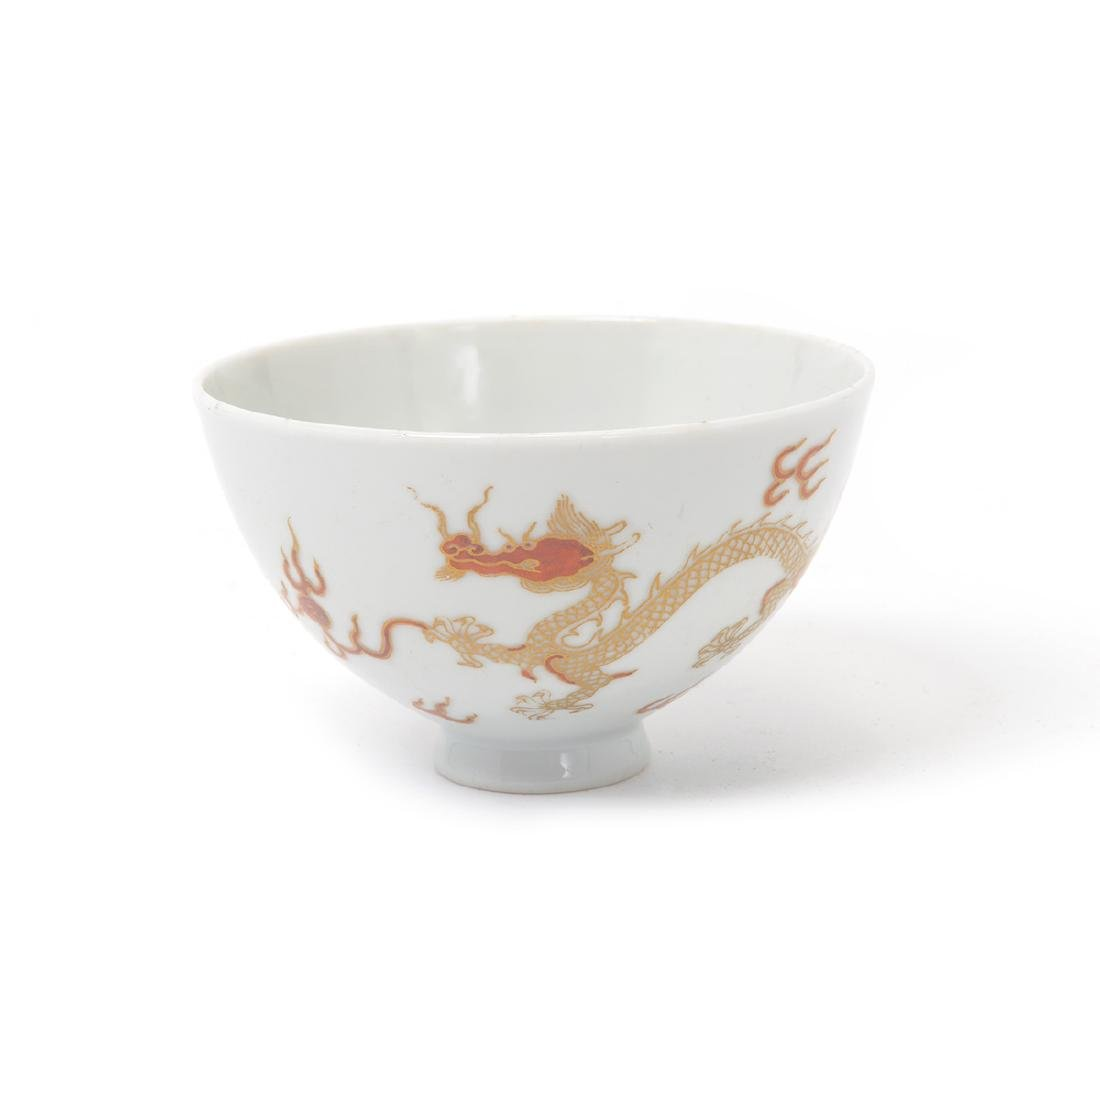 Small Iron-Red and Gilt Decorated Bowl